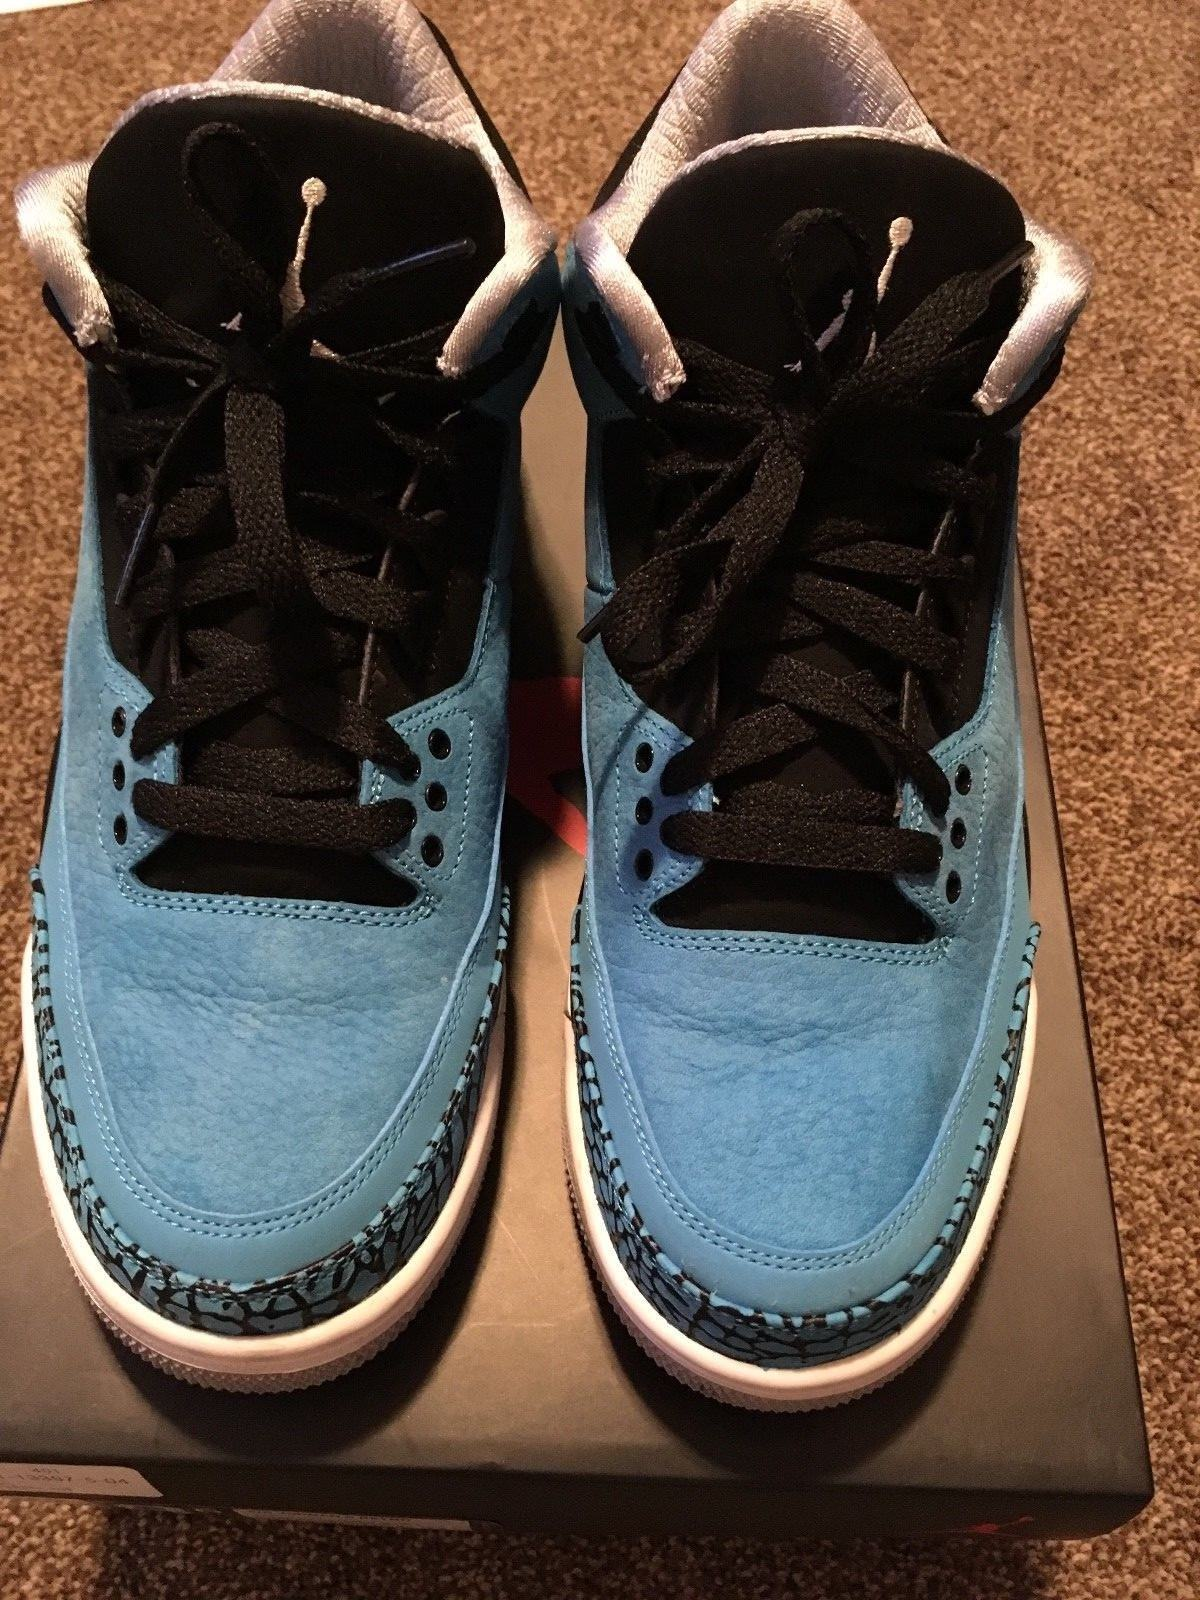 Men's Air Jordan 3 Retro Powder Blue Comfortable Cheap and beautiful fashion